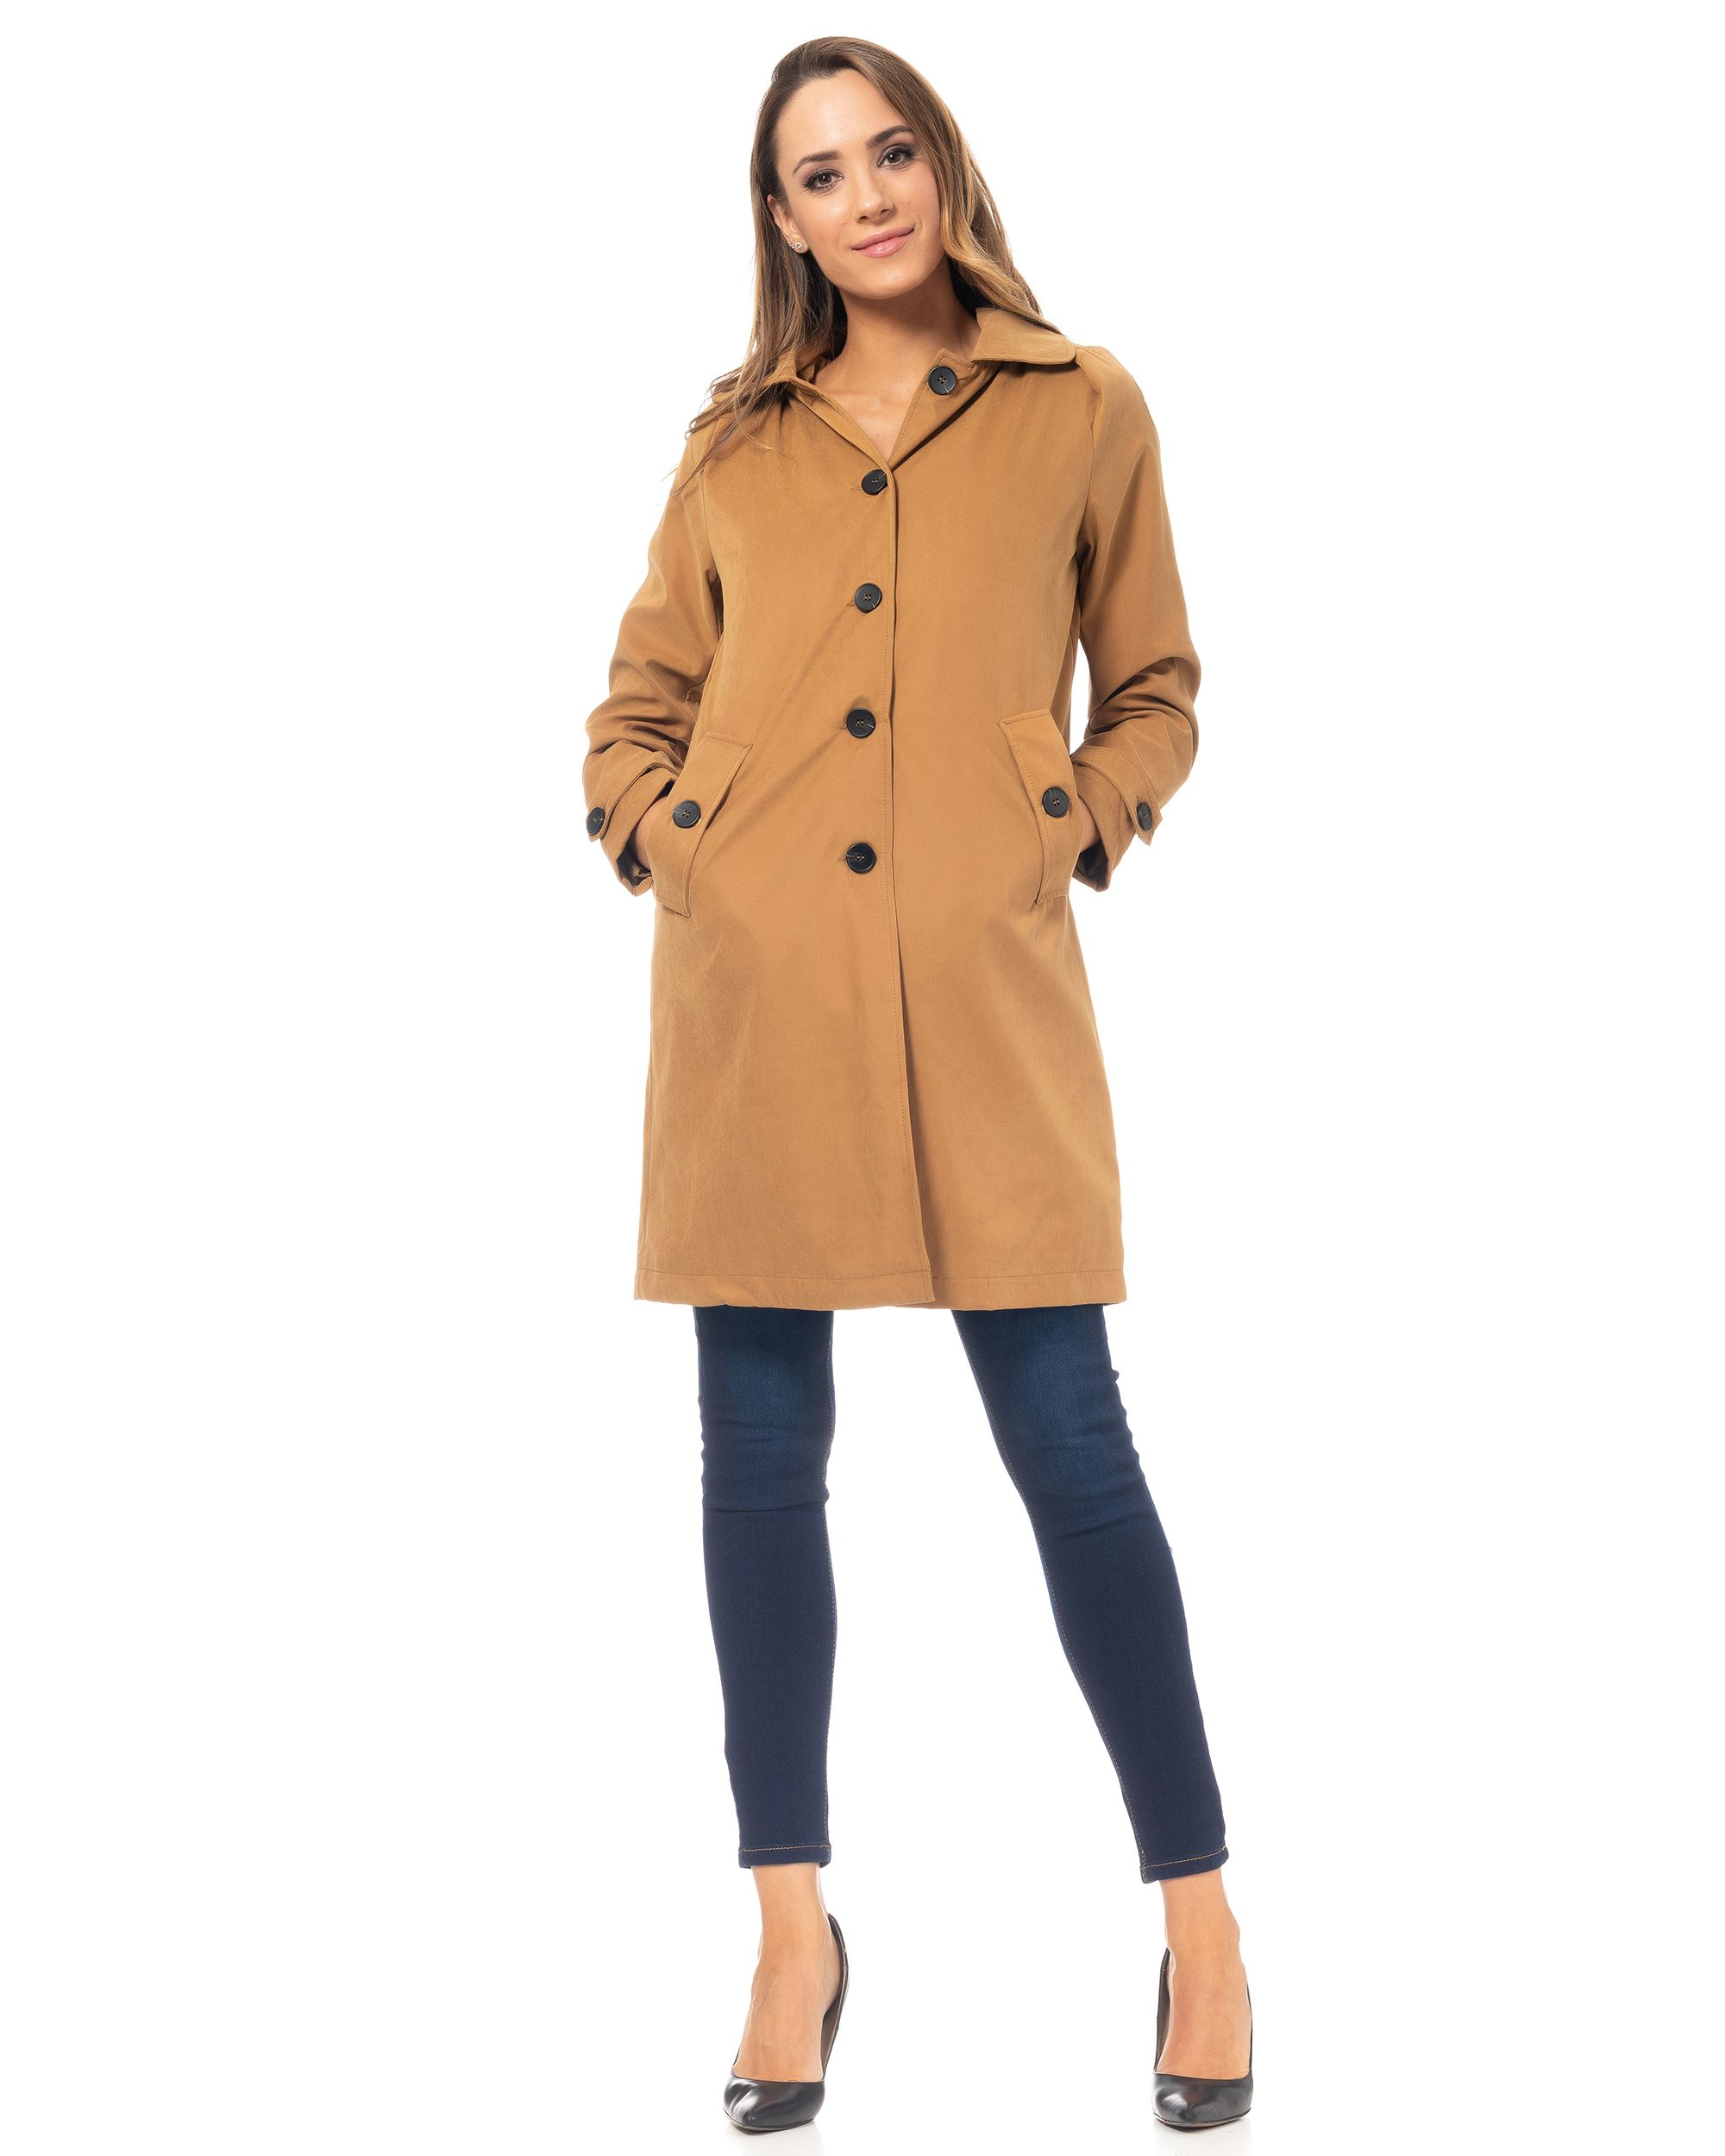 Raincoat With Hood And Pockets